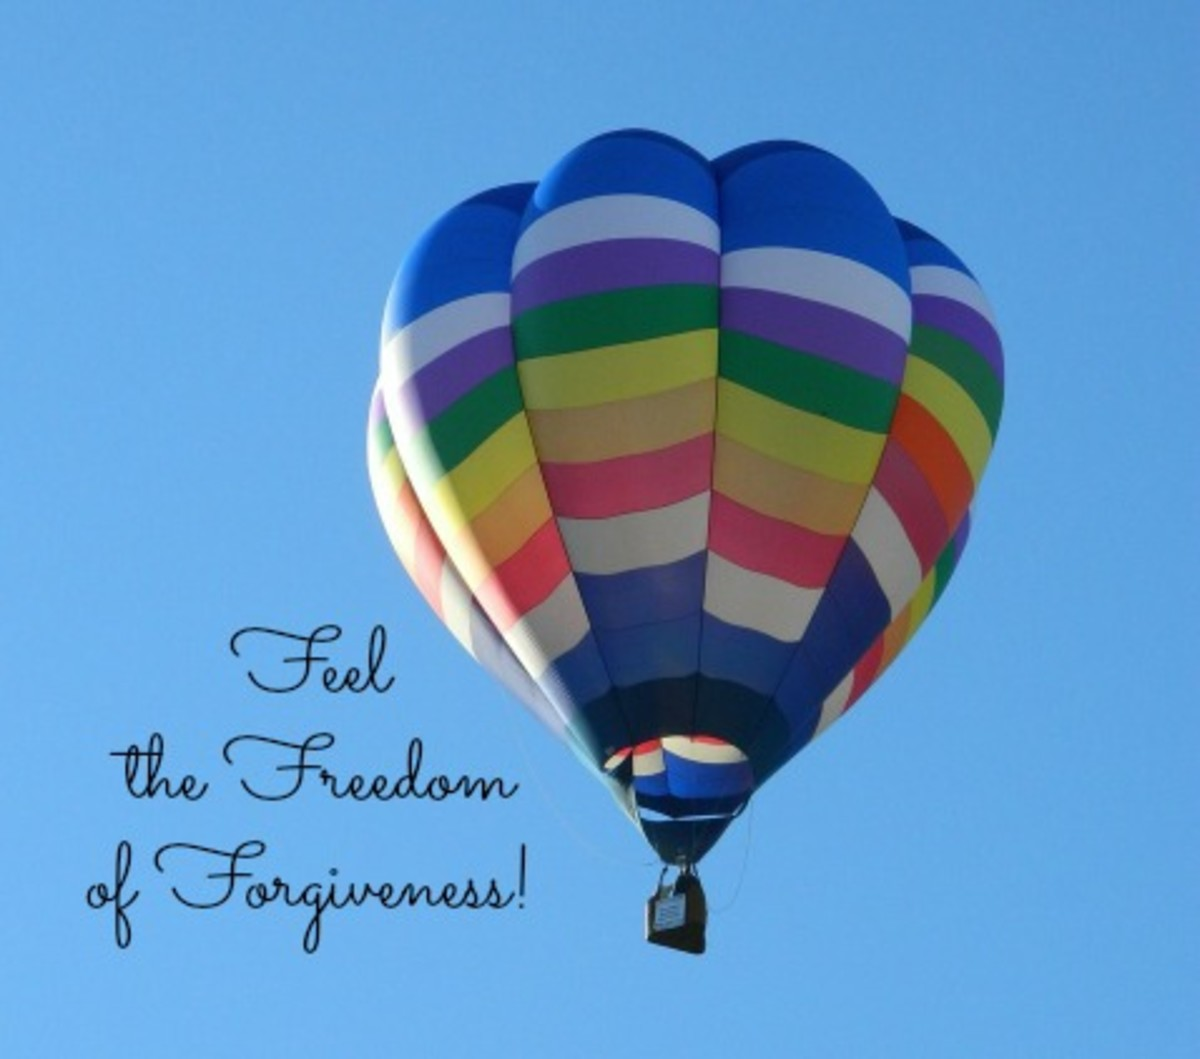 A hot air balloon symbolizes letting go of anger and grief.